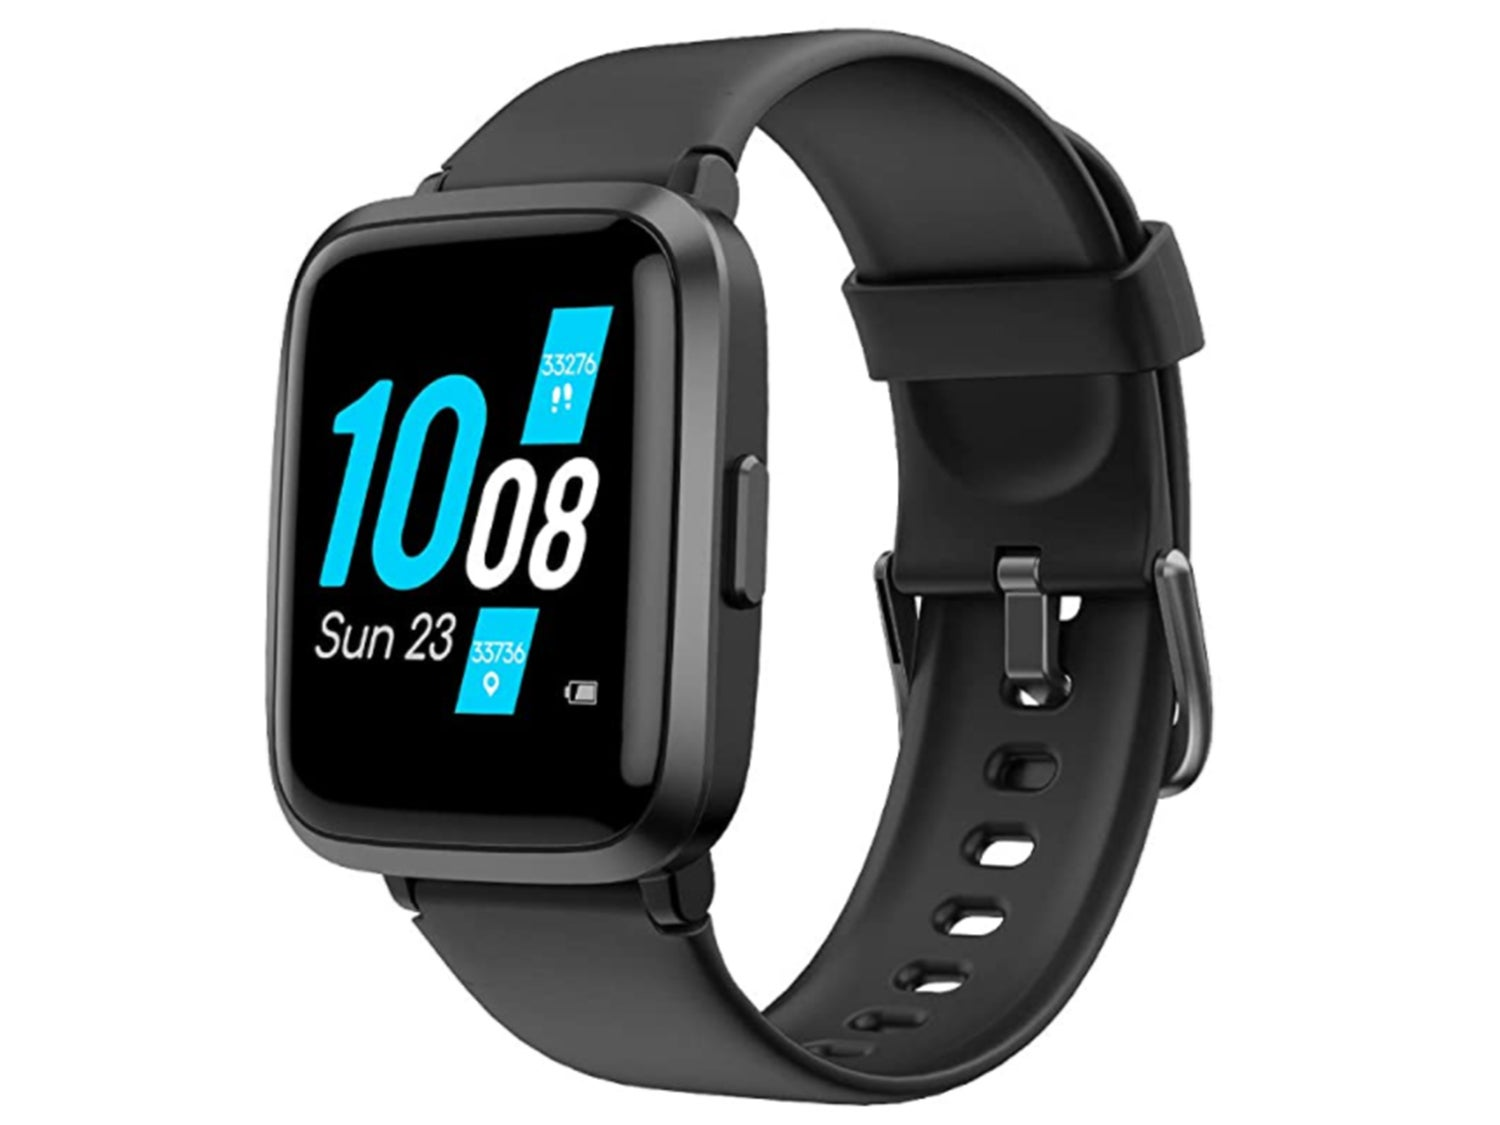 YAMAY Smart Watch 2020 Ver. Watches for Men Women